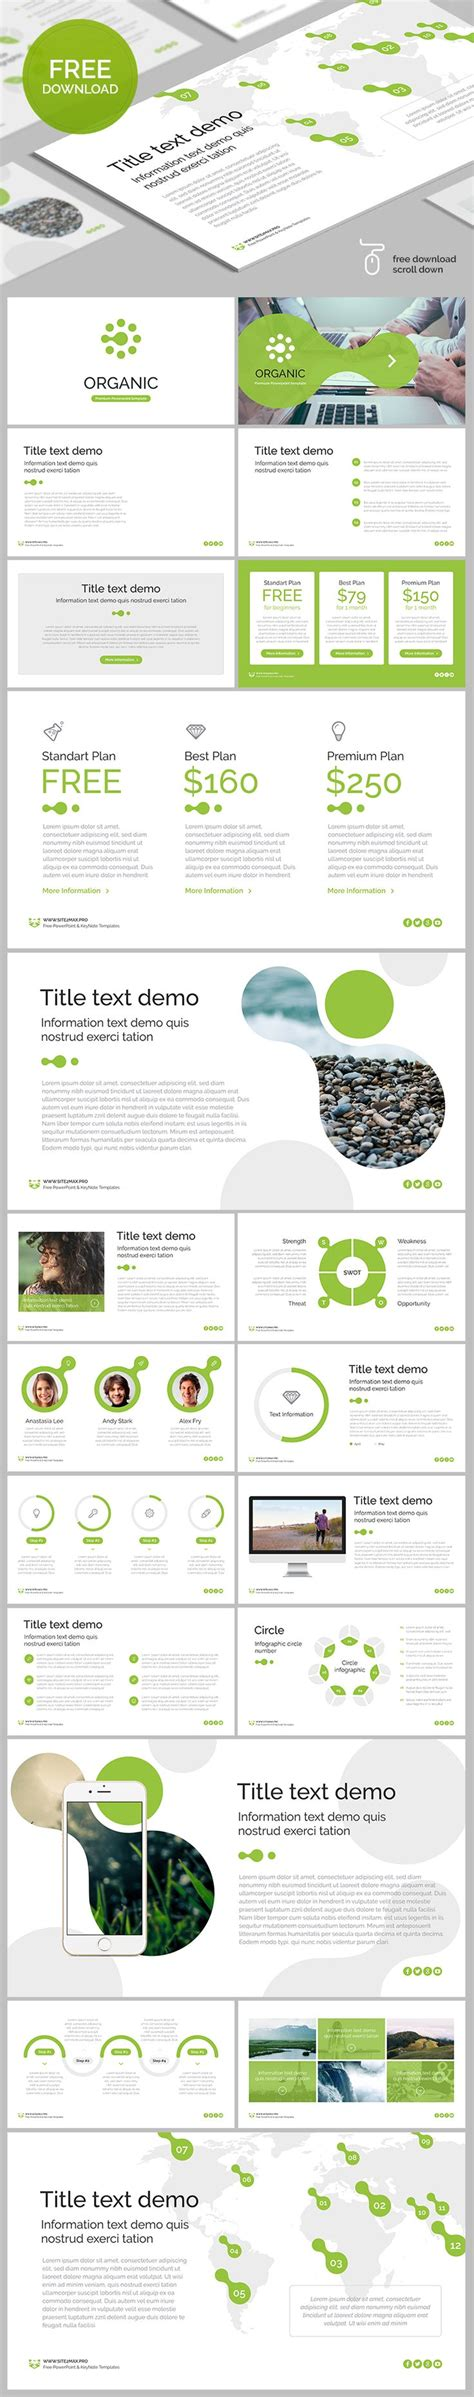 35 Best Free Powerpoint Templates For Professional 35 Best Free Keynote Template Images On